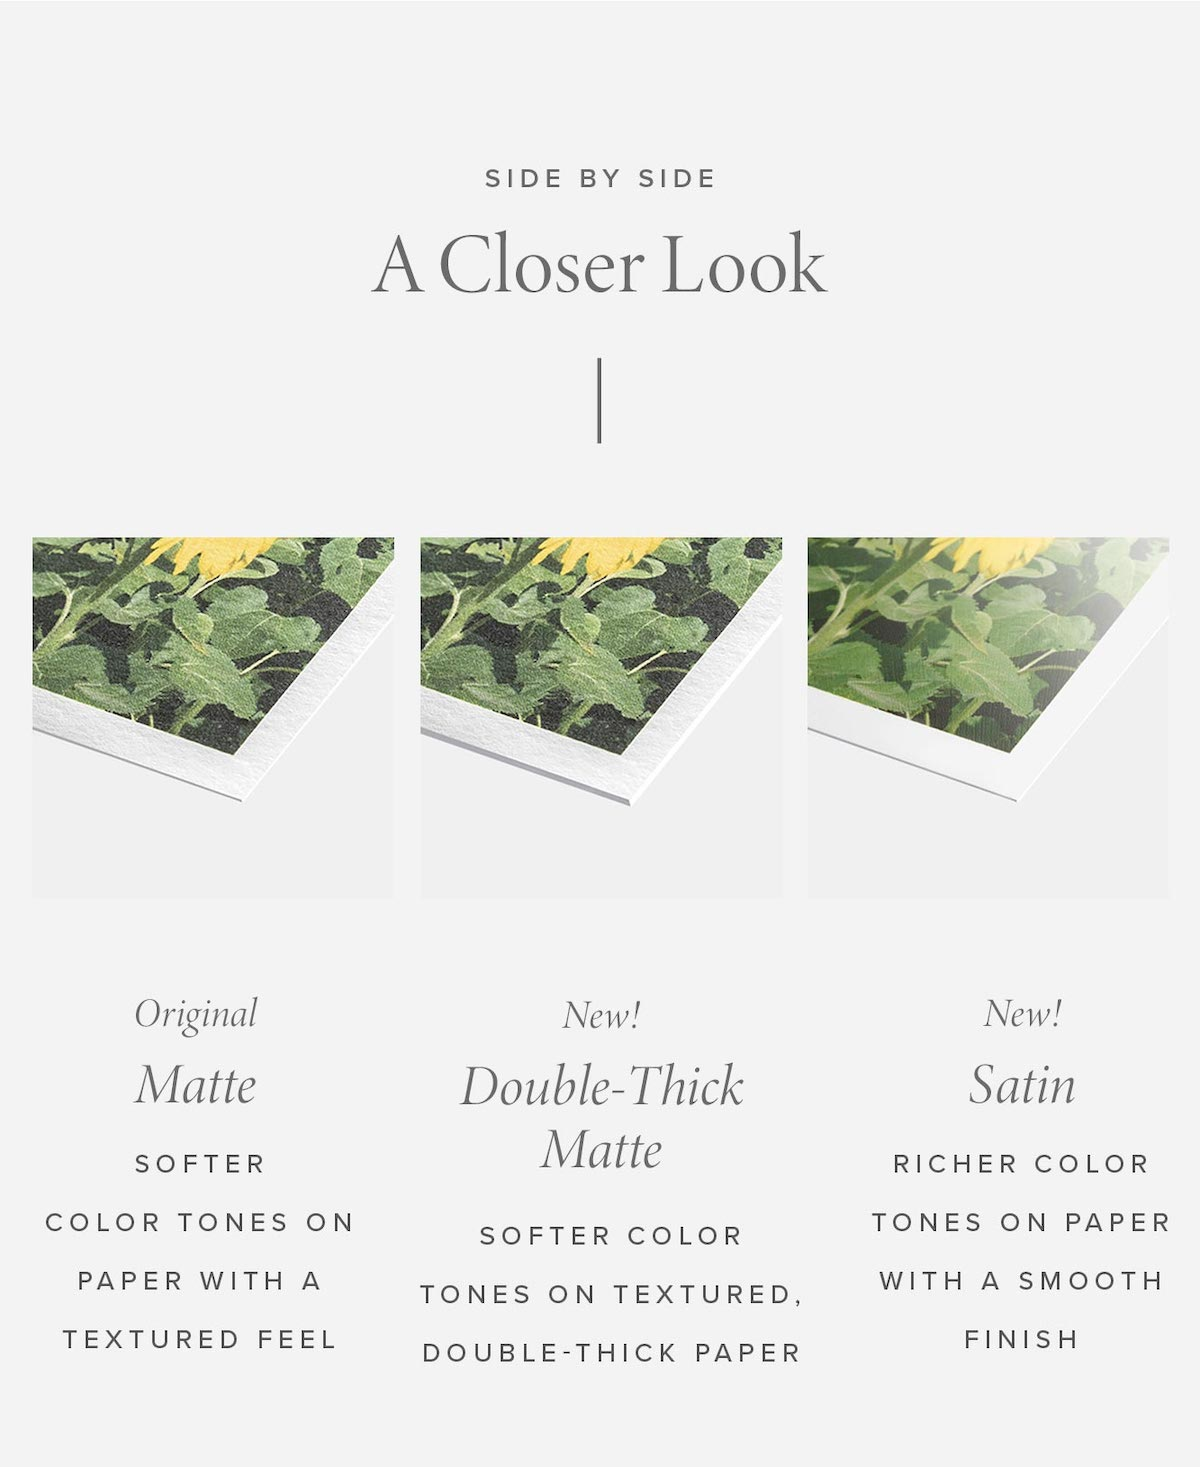 Comparison of matte, double-thick, and satin types of photo paper finishes